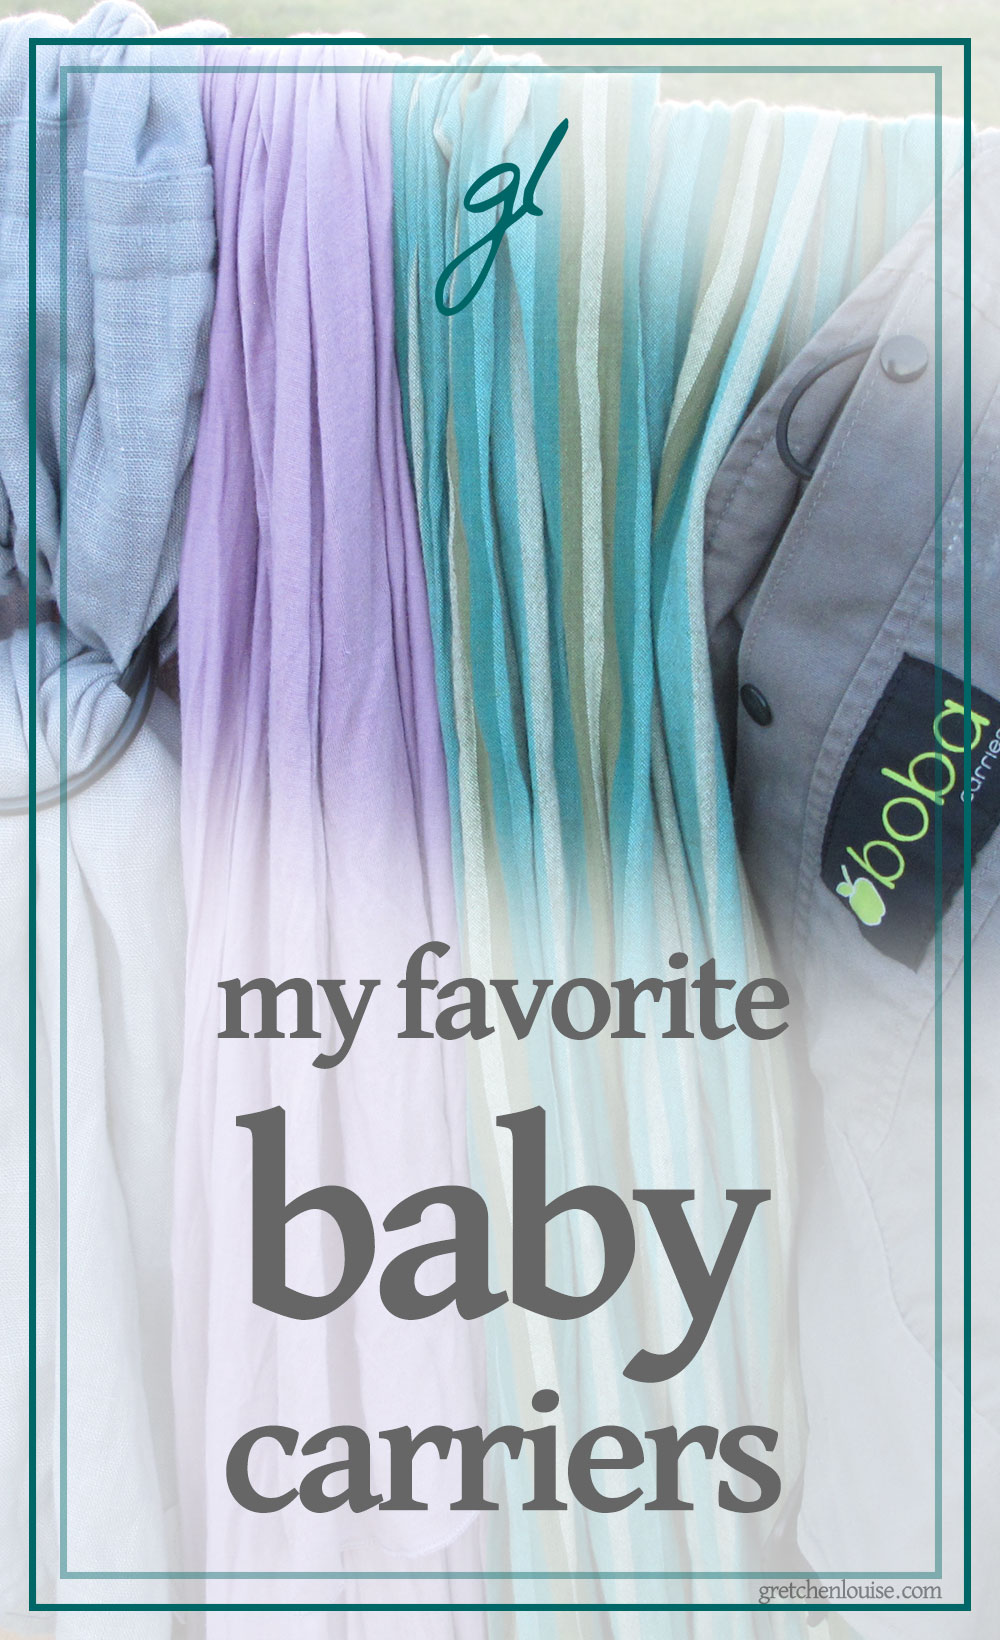 """What's your favorite baby carrier?""The question makes me laugh.Especially when followed with, ""If you could only buy one baby carrier, which would you buy?""It's like asking a cook what their favorite kitchen appliance is.Or asking a man to choose just one tool out of his entire toolbox.But since you asked, here are the favorites from my babywearing stash. via @GretLouise"